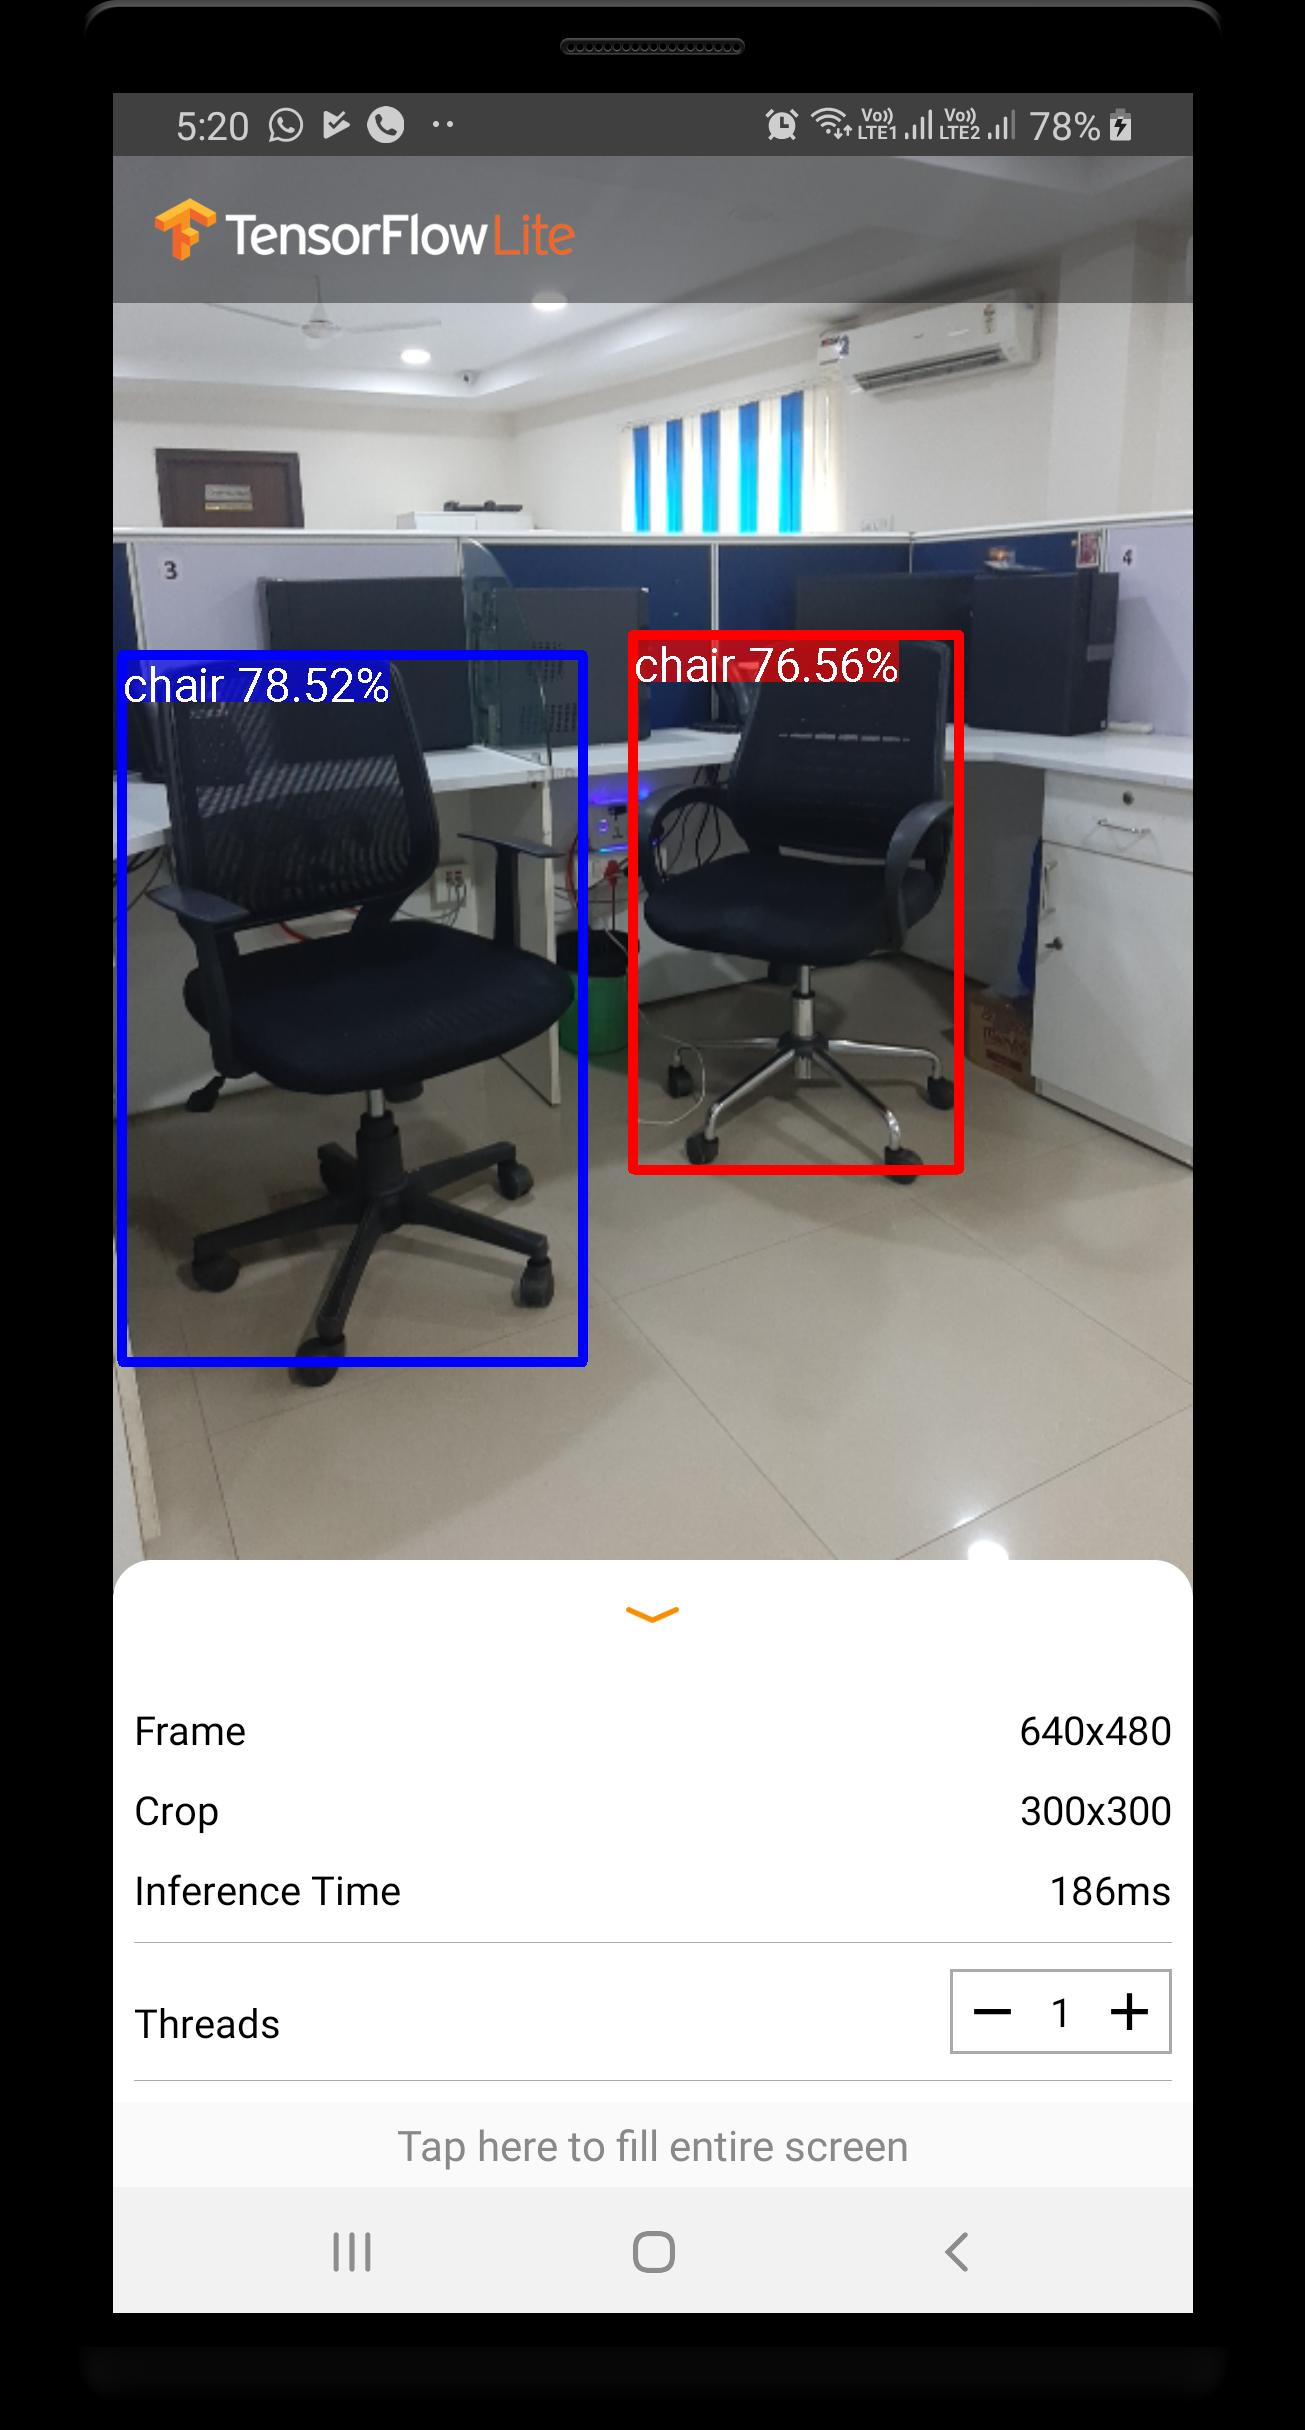 TensorFlow Lite Object Detection Demo 2019 for Android - APK